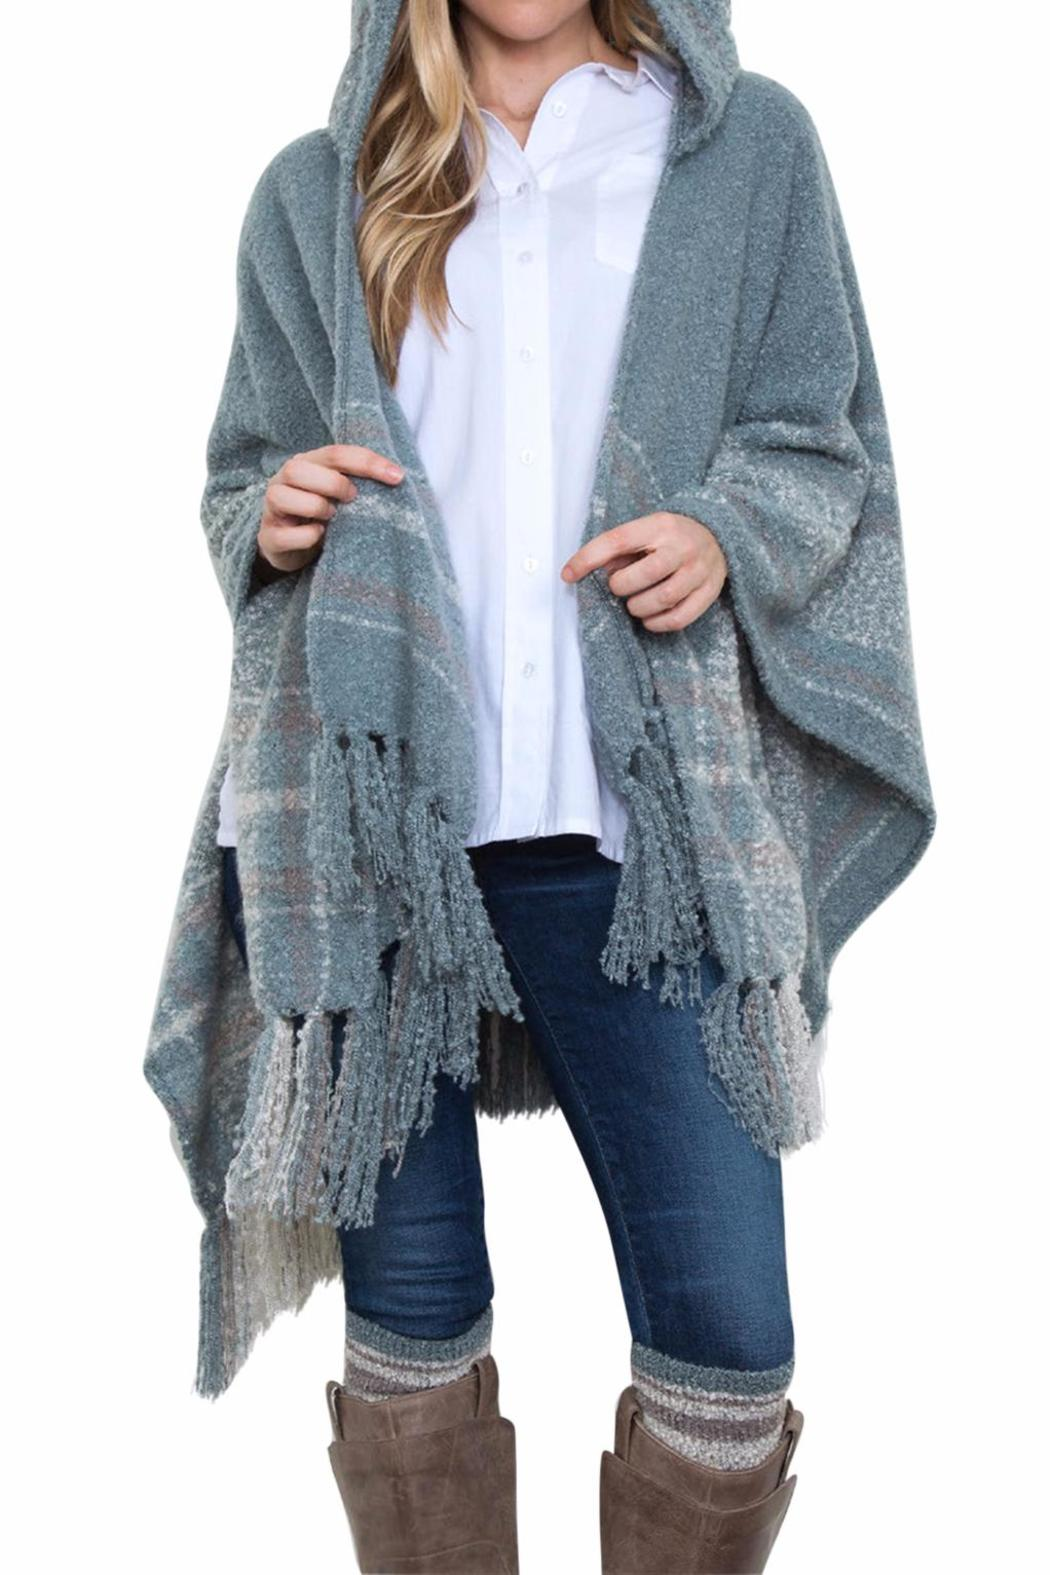 3411fa6332e1 Simply Noelle Hooded Cozy Wrap from Ohio by Owl Eyes on You — Shoptiques